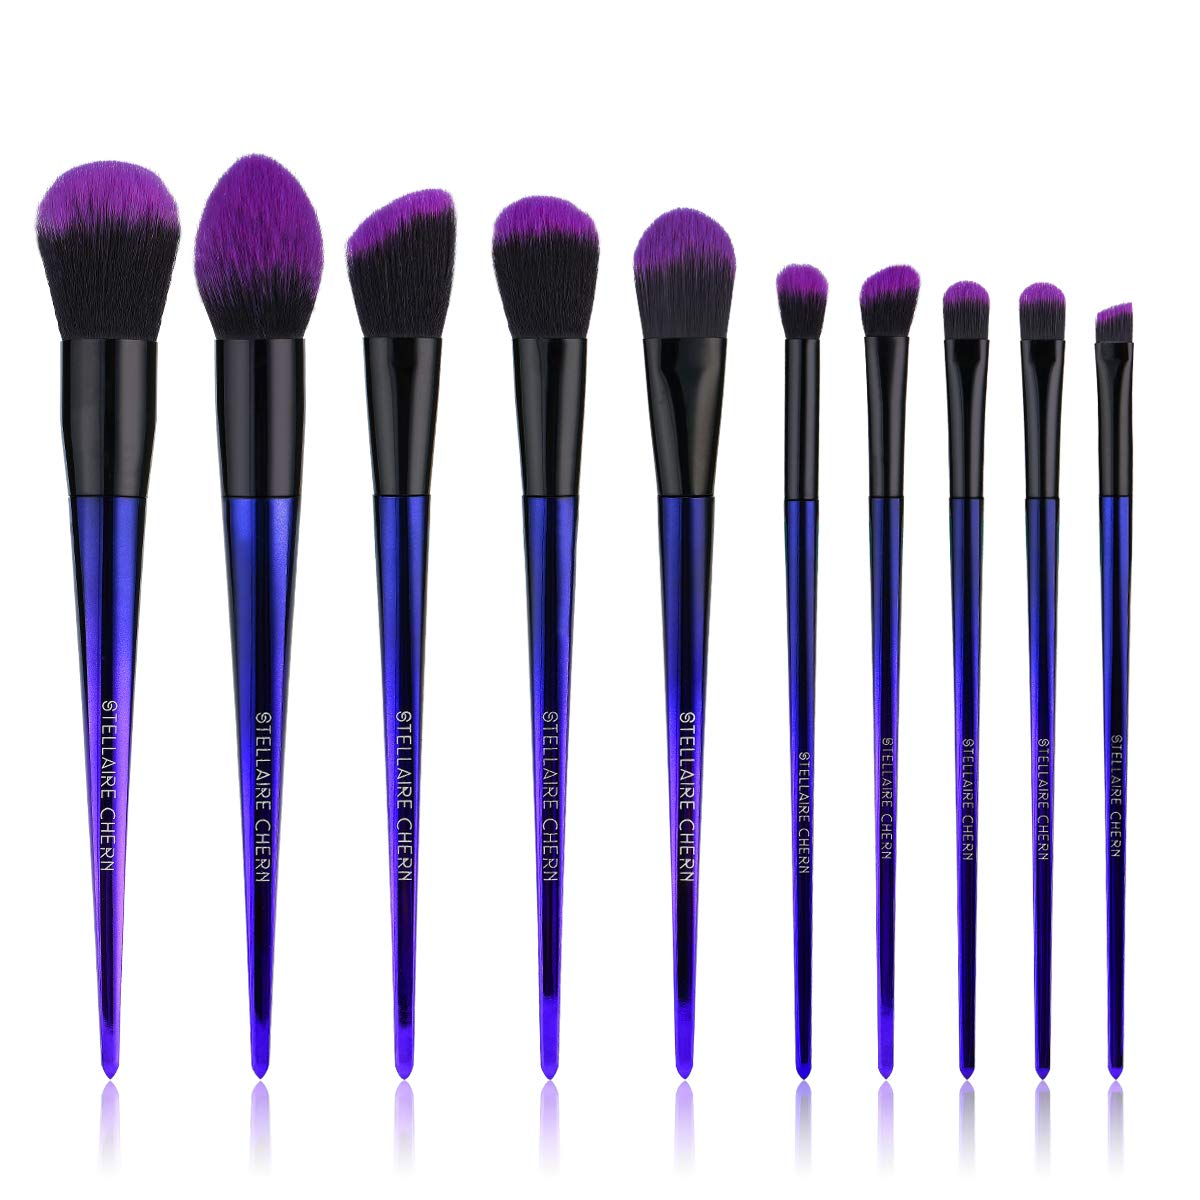 Stellaire Chern Makeup brush set, 10 Pcs Premium Synthetic Cosmetic Brushes, Foundation Blush Power Eye Shadow Make Up Brushes Kit - Purple & Black